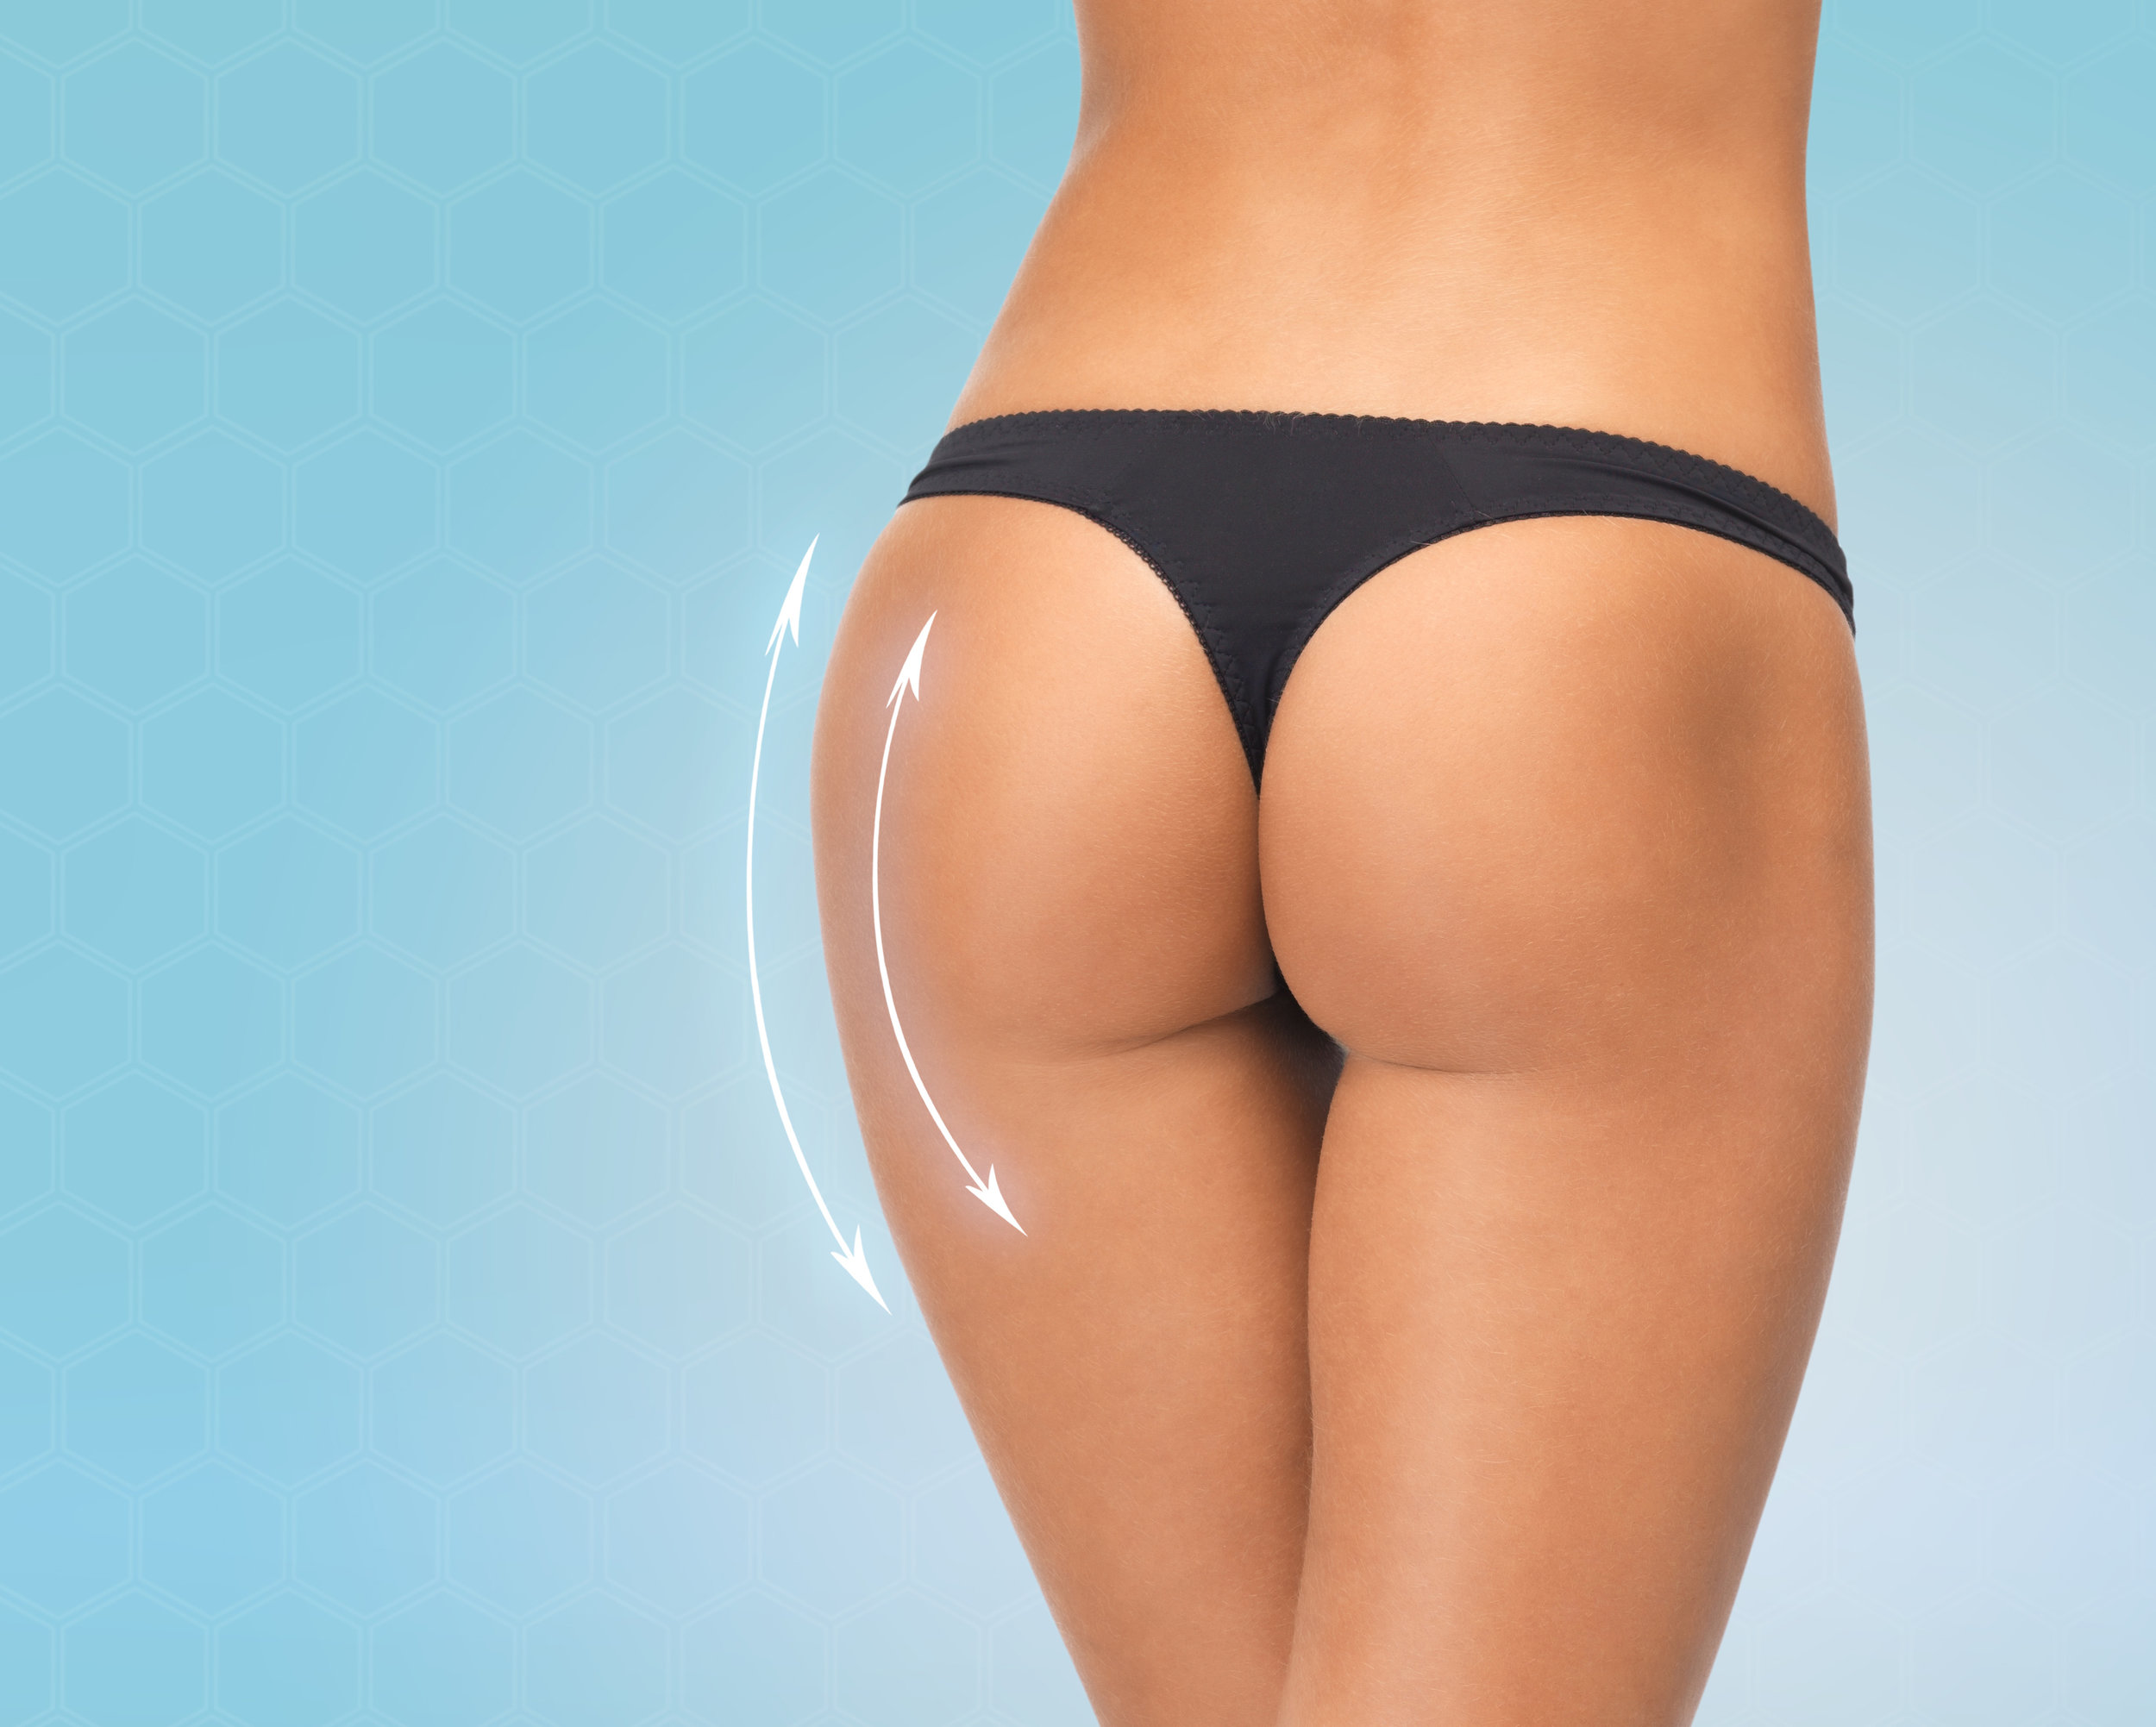 beautyscripts medical aesthetic practice specializing body contouring & cellulite reduction - yorktown heights, ny